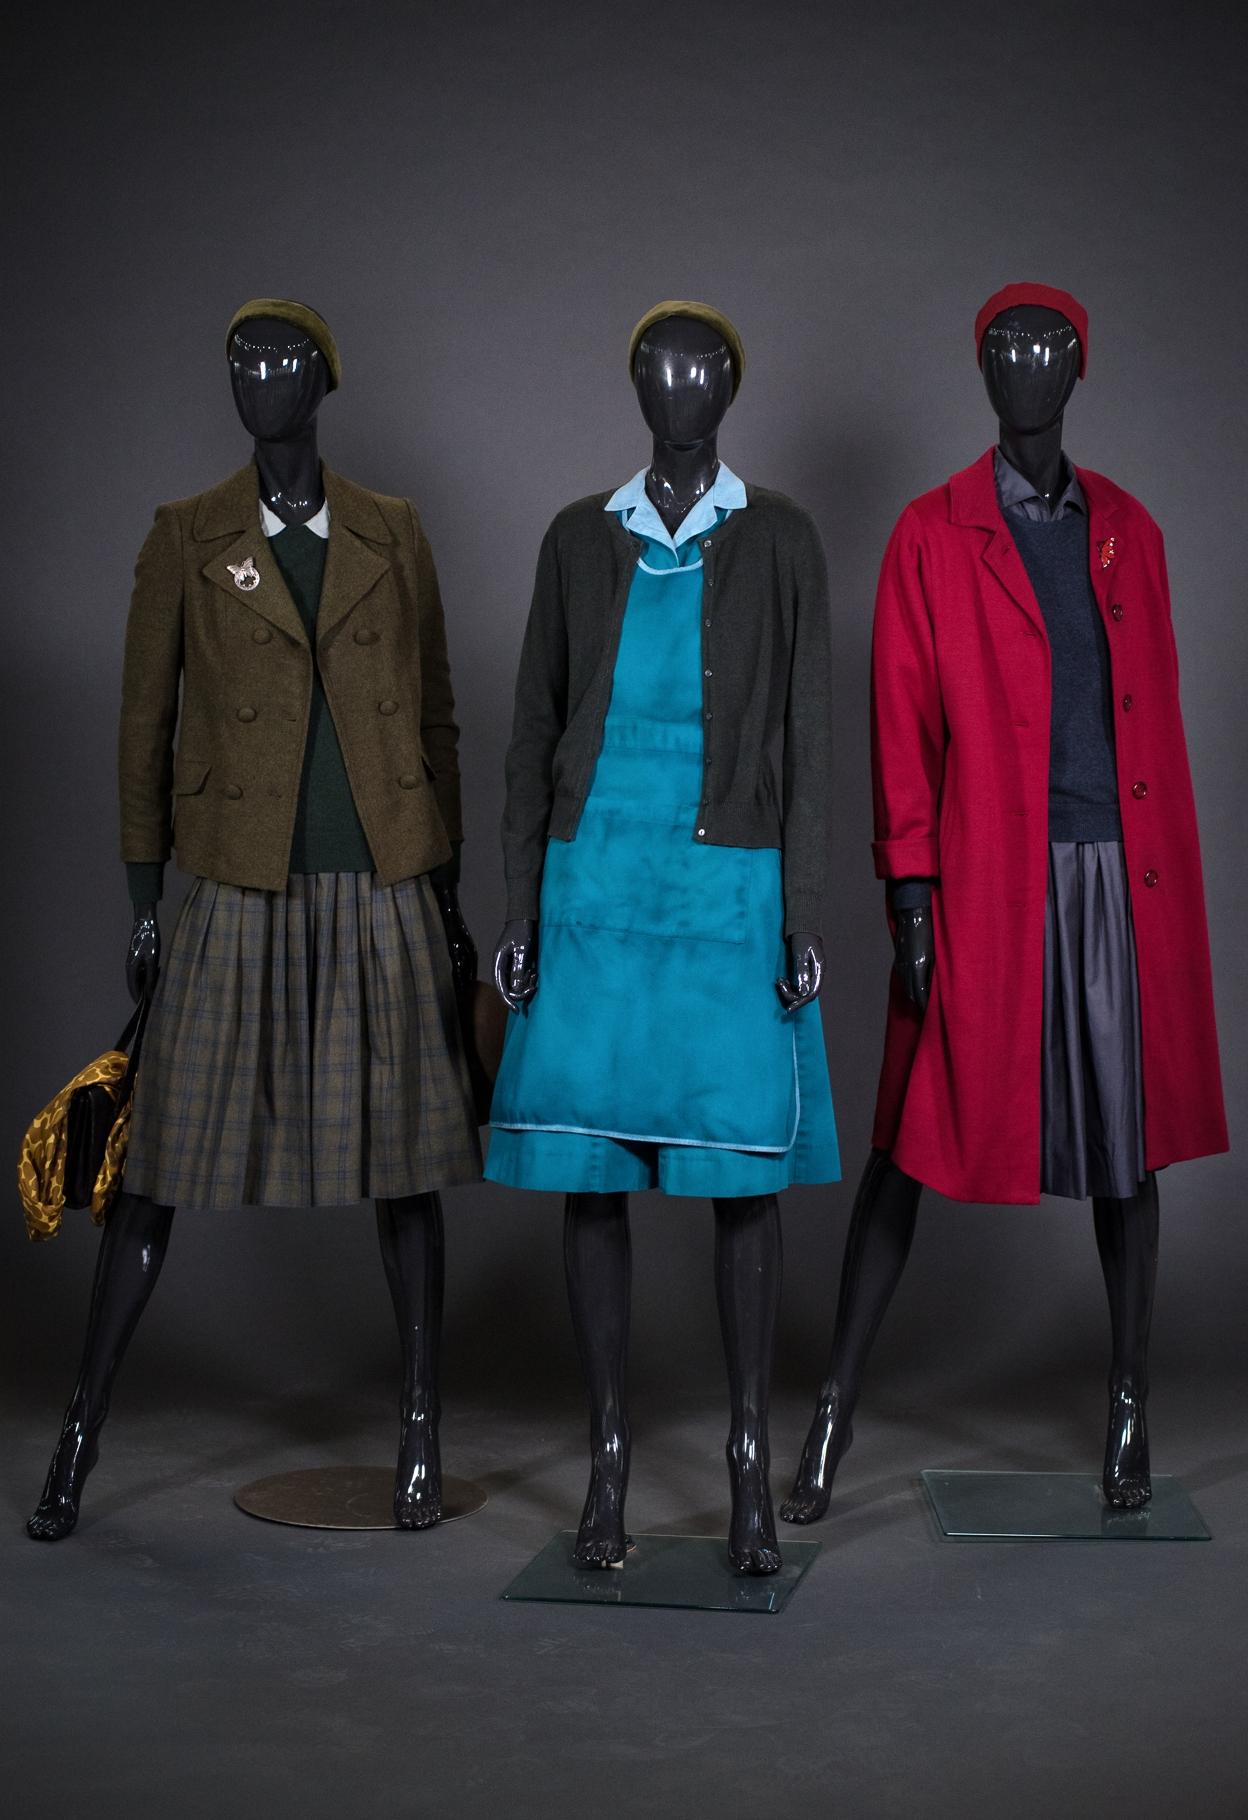 Costumes from The Shape of Water, by Costume Designer Luis Sequeira (Photo credit: Nick Wons Photography)